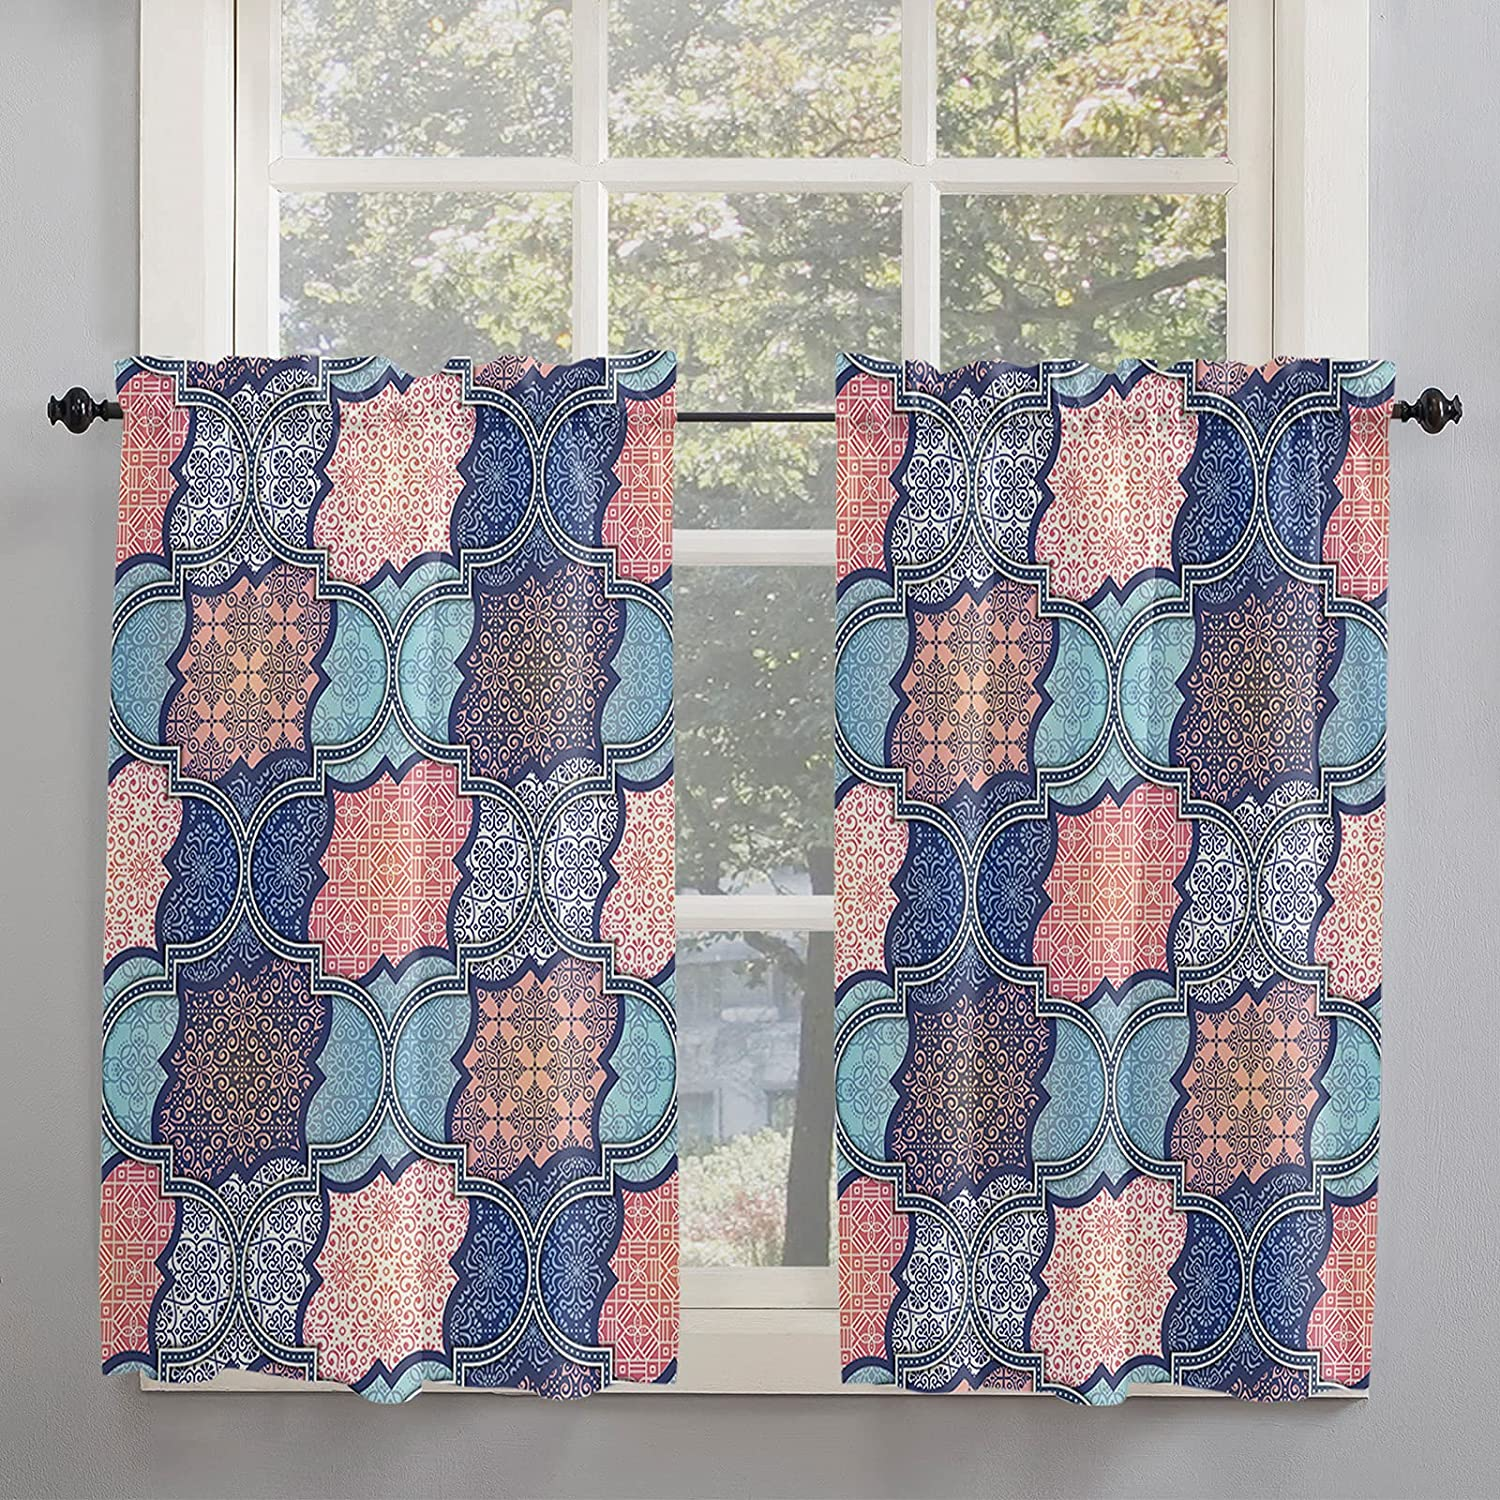 Retro Moroccan Style Kitchen Curtains for Windows Length Inch 54 Ranking TOP3 Complete Free Shipping